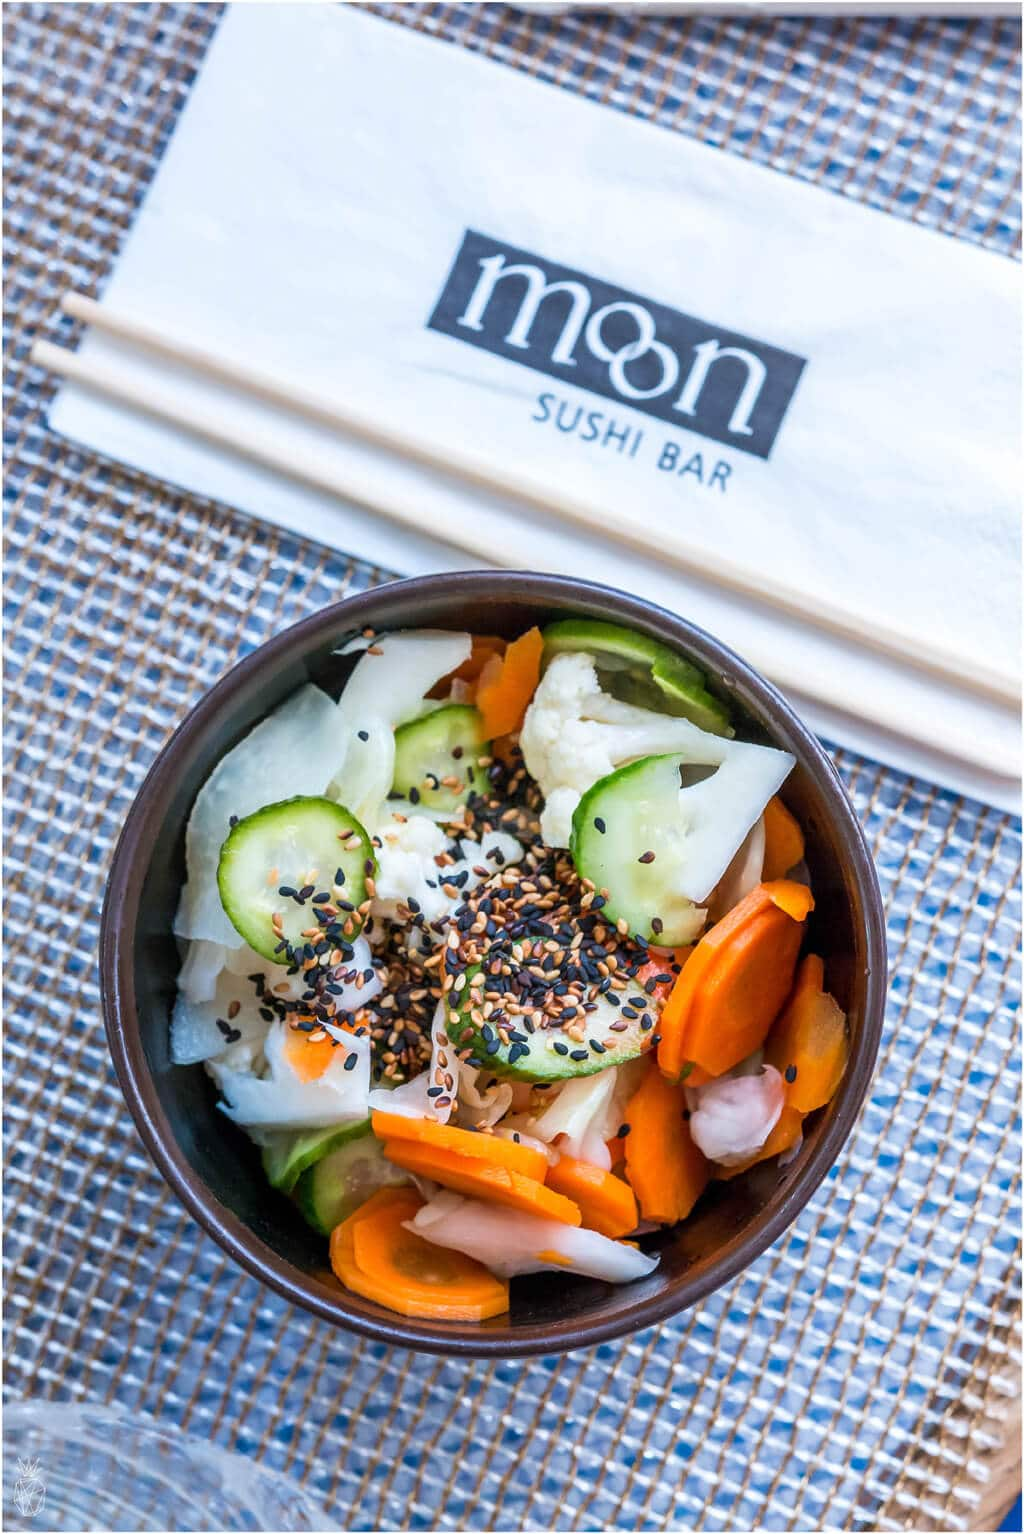 Best sushi place in Tel Aviv, Israel - Moon // Where to eat in Tel Aviv // Vacation in Israel